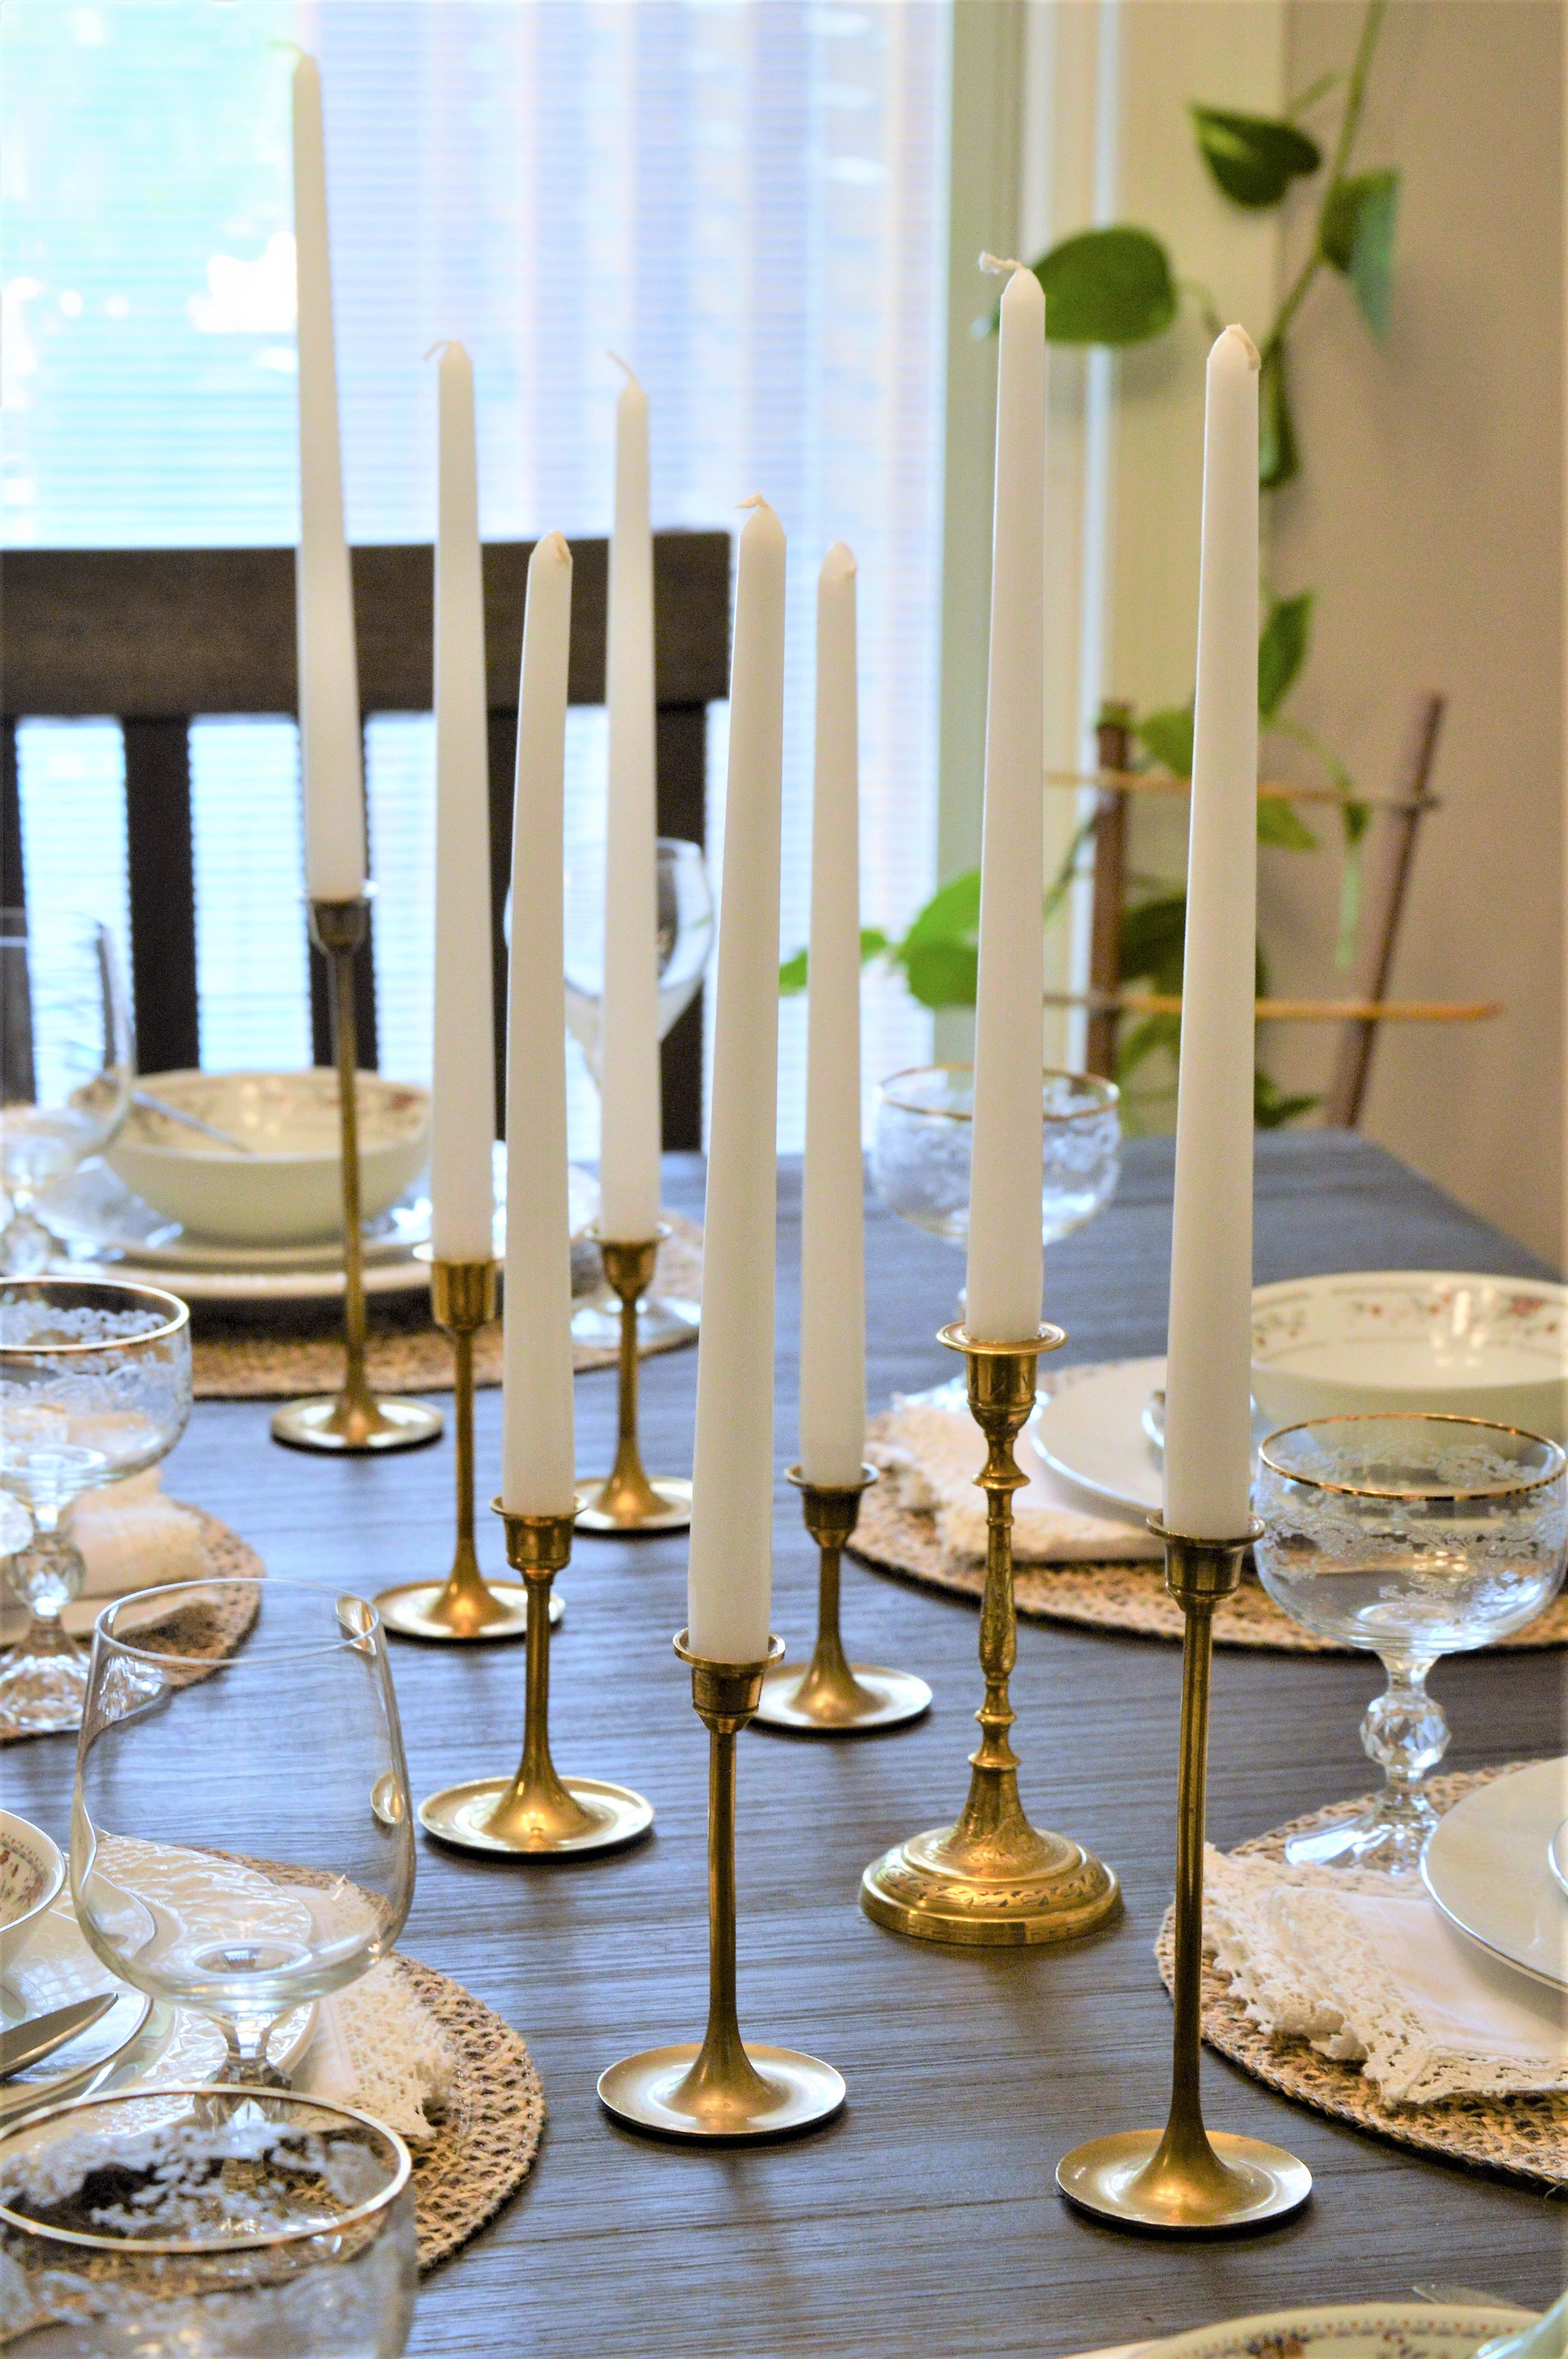 Using Vintage Brass Candlesticks For Tablescape Candlestick Centerpiece Dining Centerpiece Dining Table Centerpiece